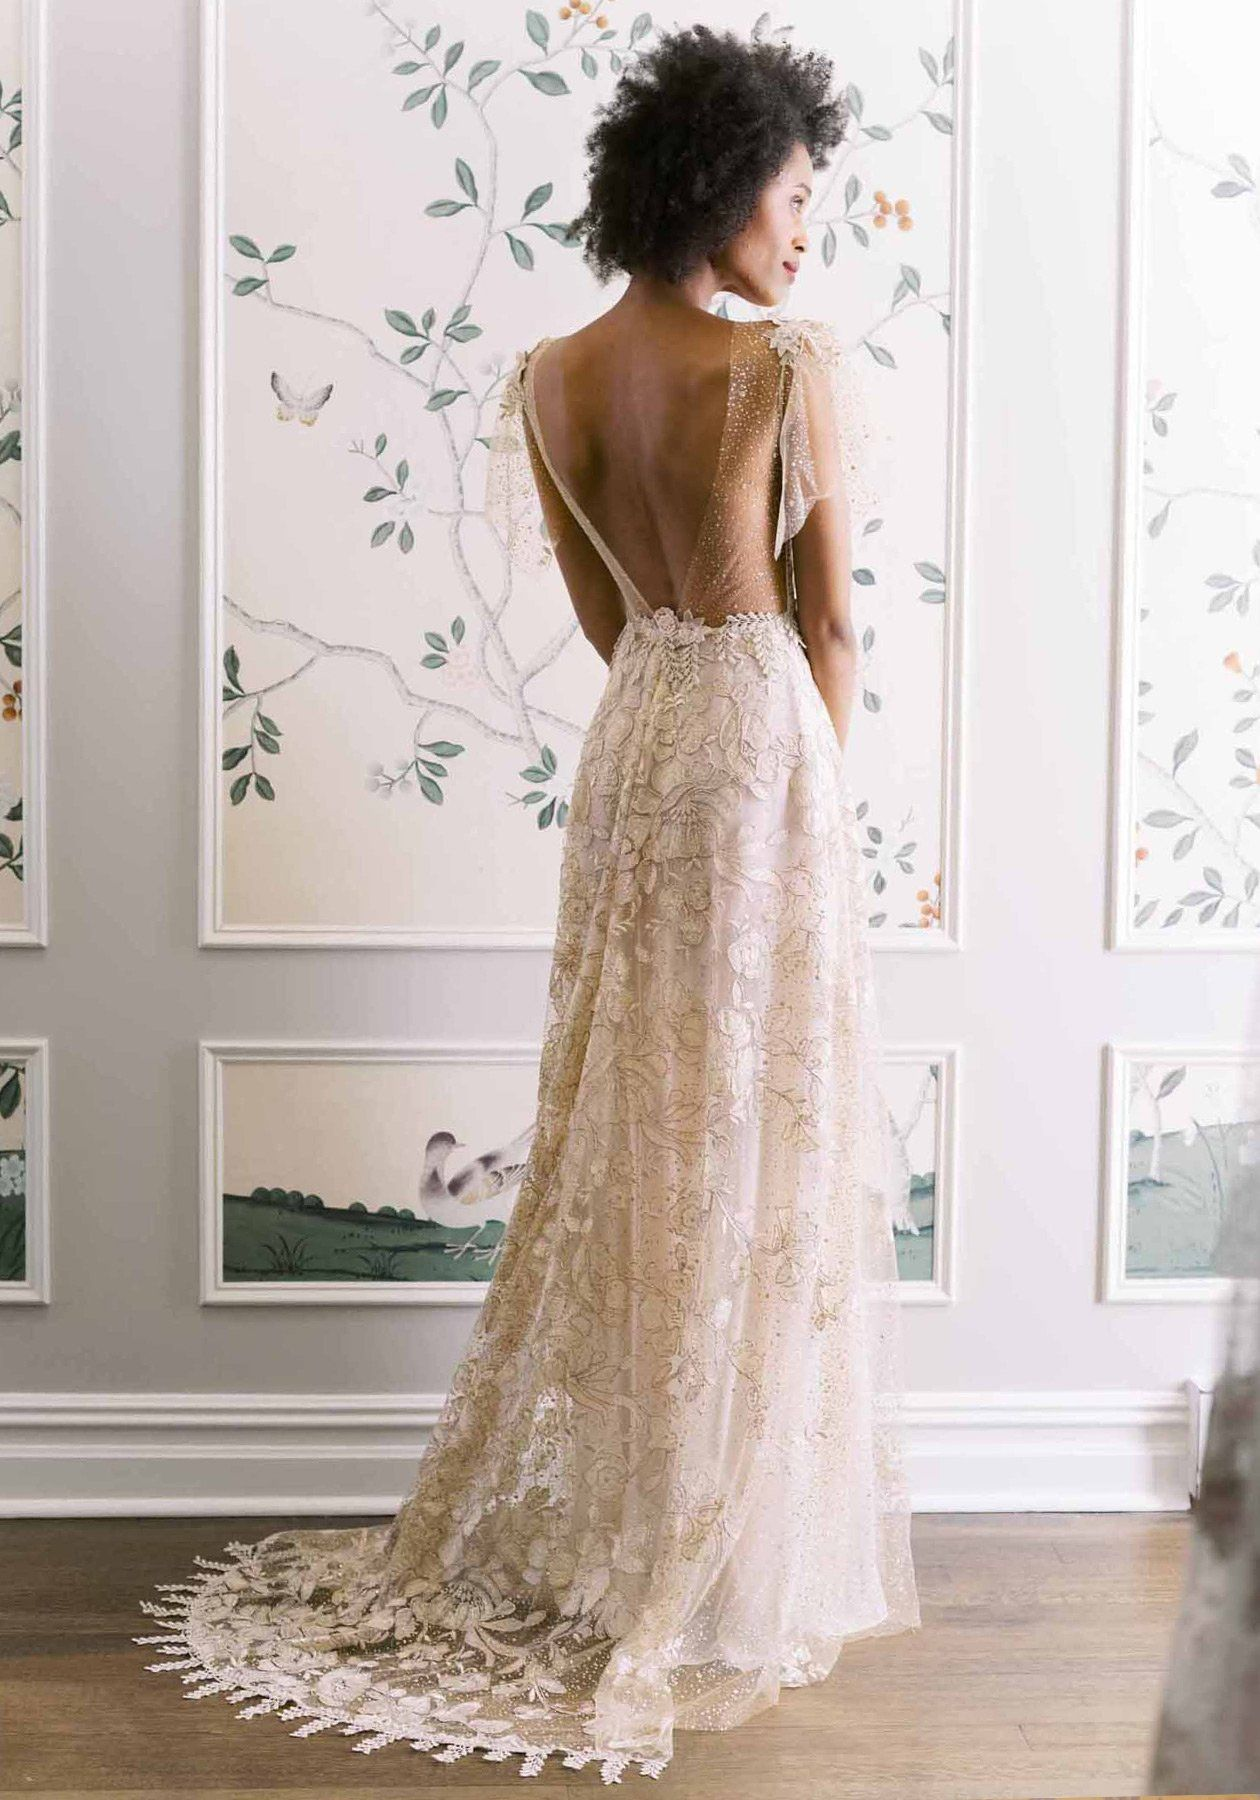 Claire Pettibone Trunk Show - Kelly's Closet - Feb 2020